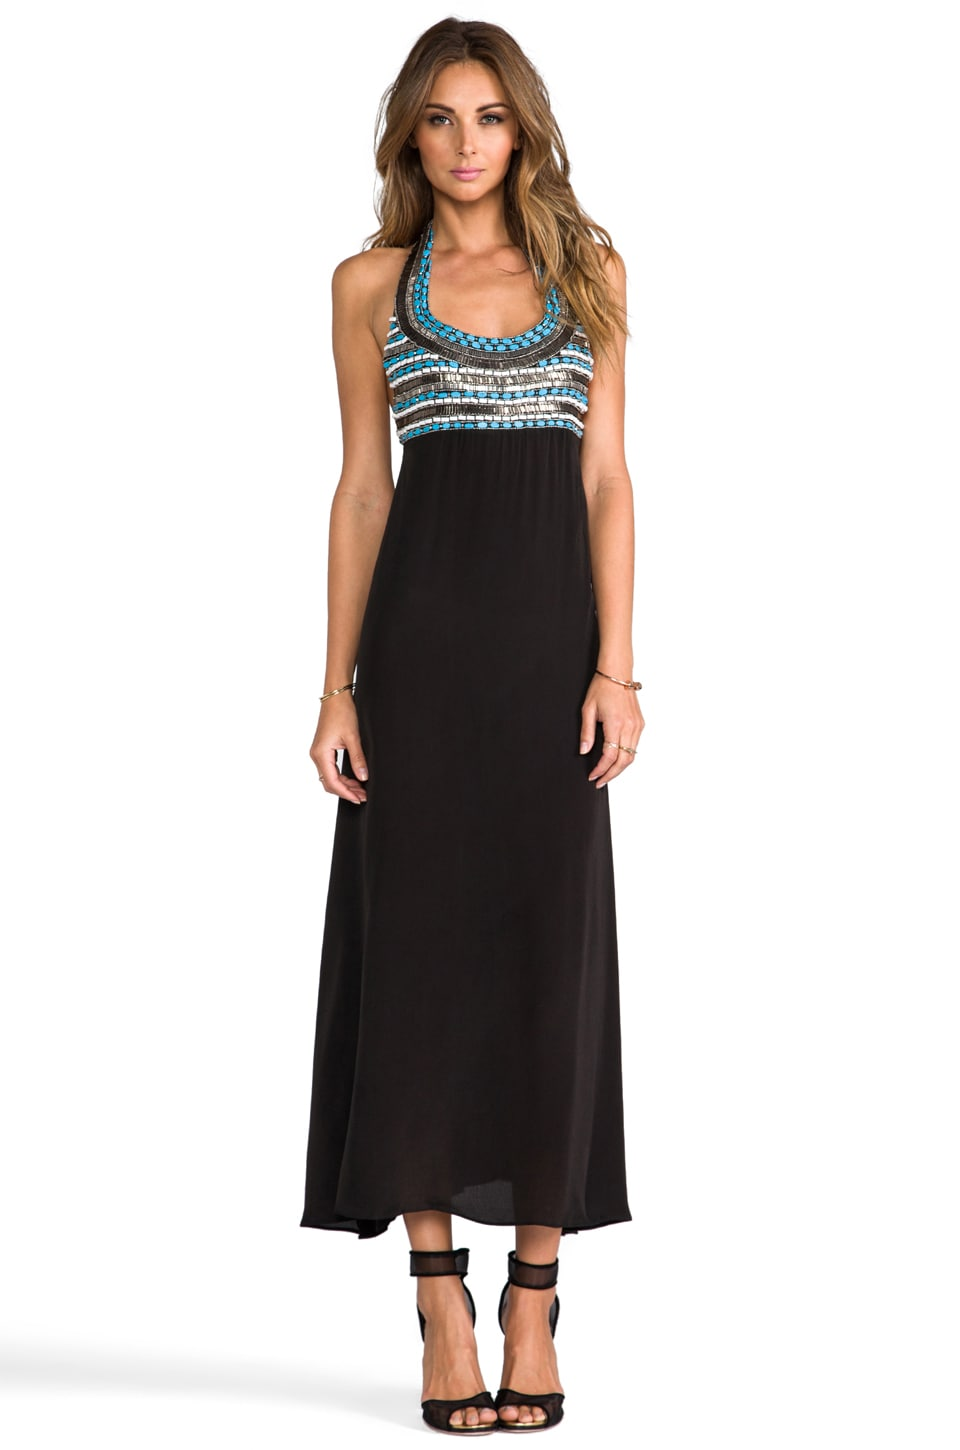 Karina Grimaldi Algeria Beaded Maxi in Black